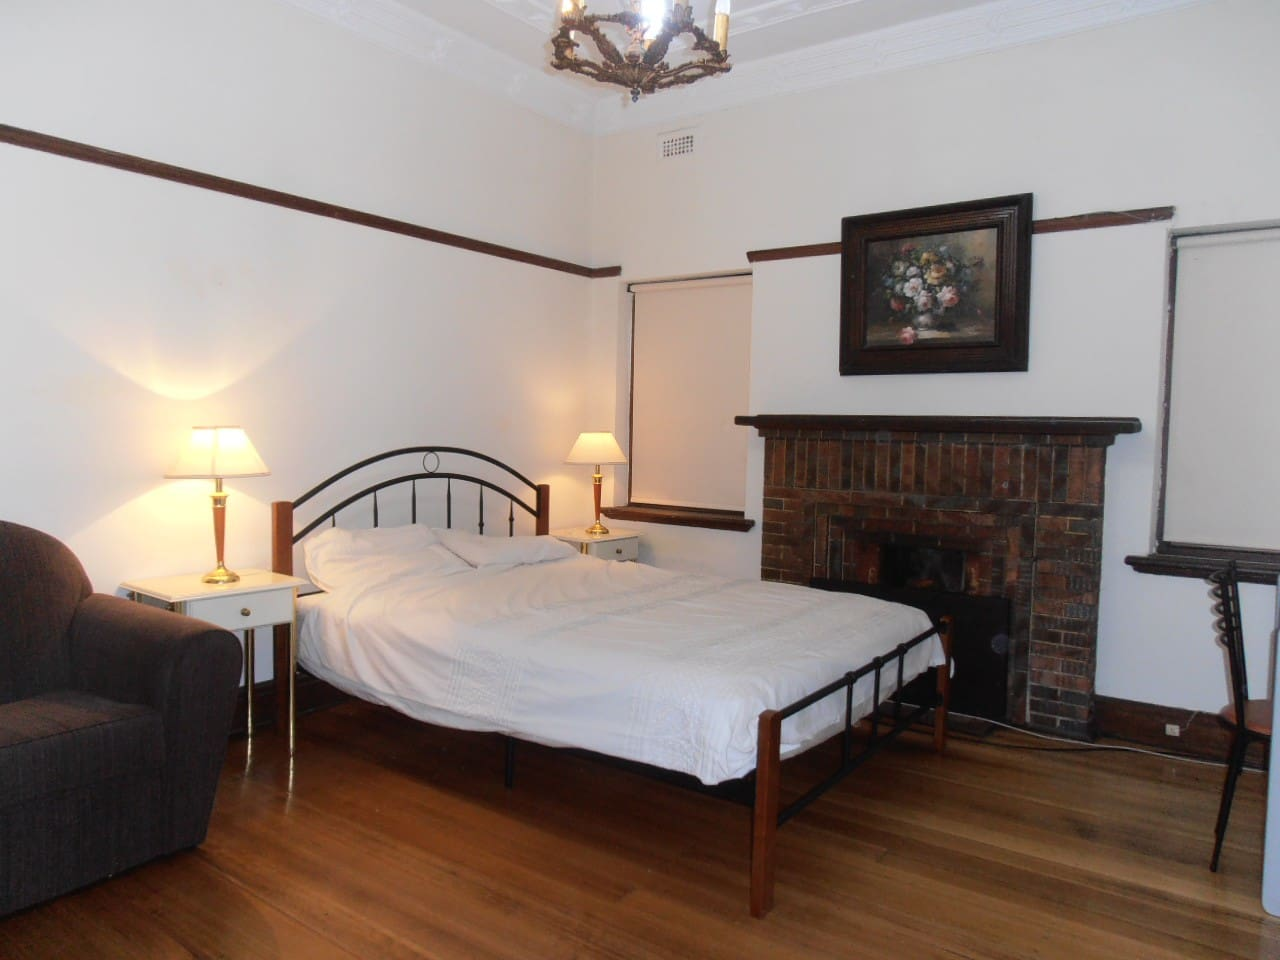 Room 2 - Spacious Art Deco fully furnished room. Queen size bed.